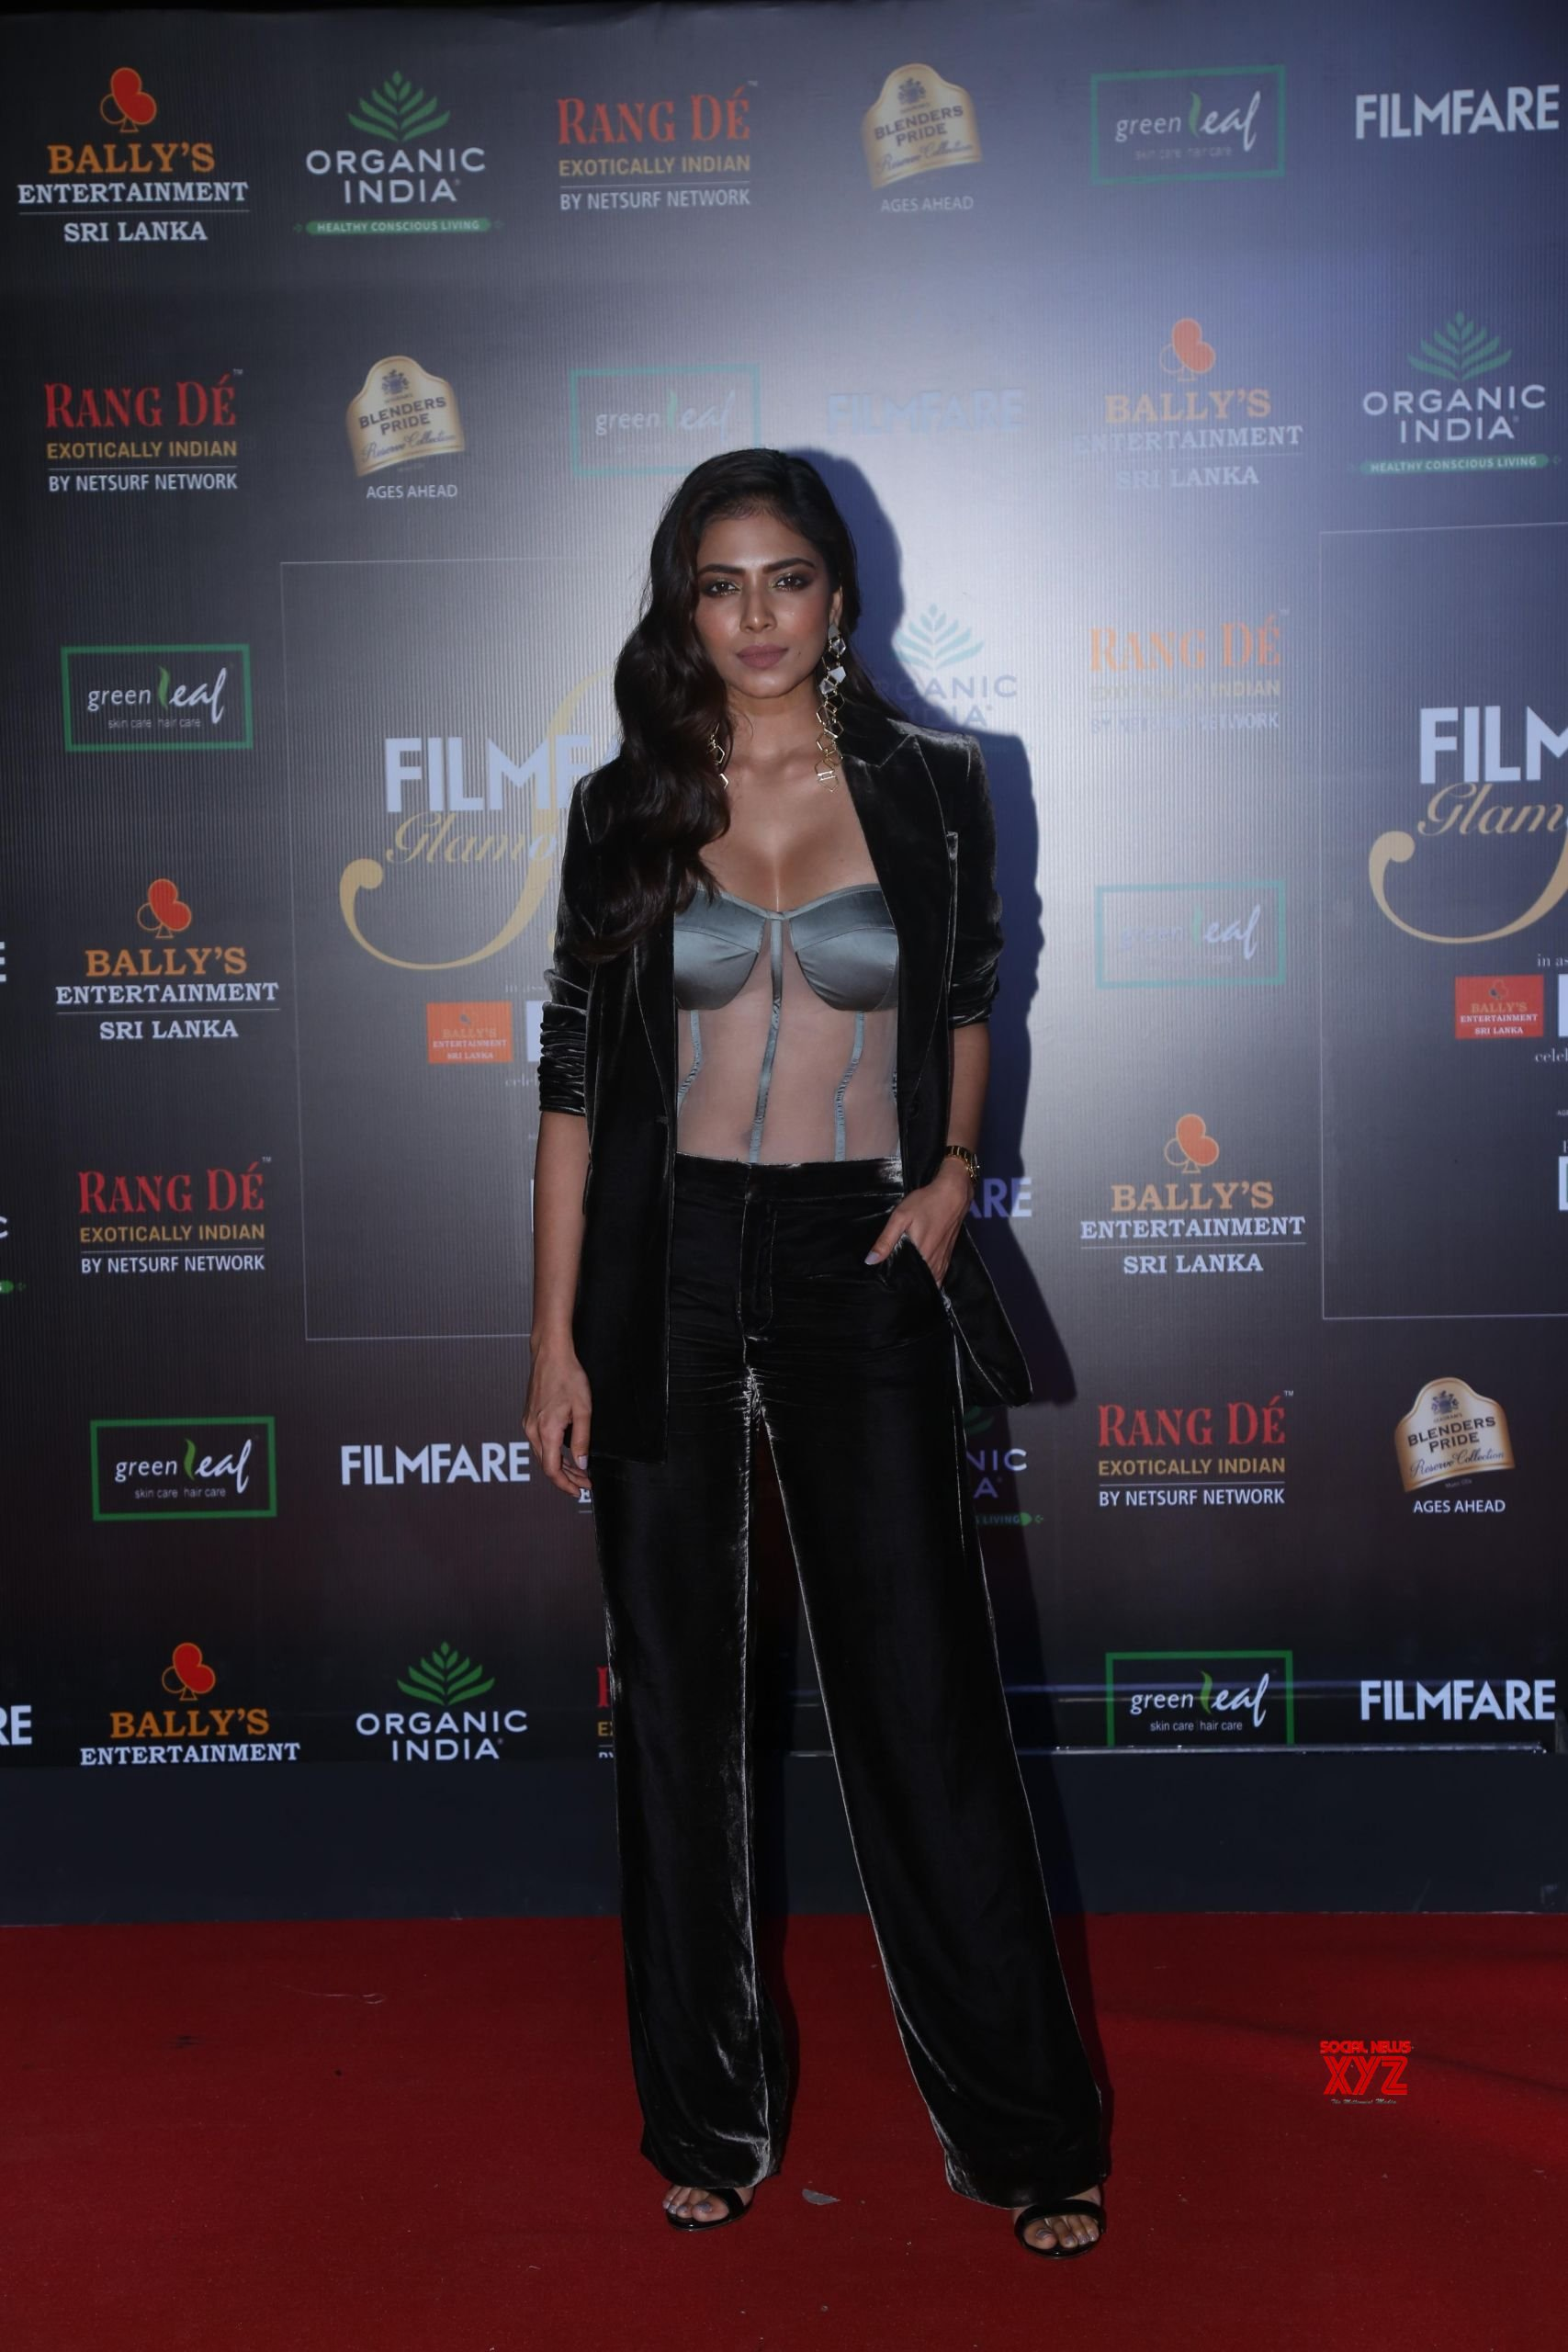 Celebs At Filmfare Glamour And Style Awards 2019 Red Carpet At Taj Lands End In Bandra HD Gallery Set 2